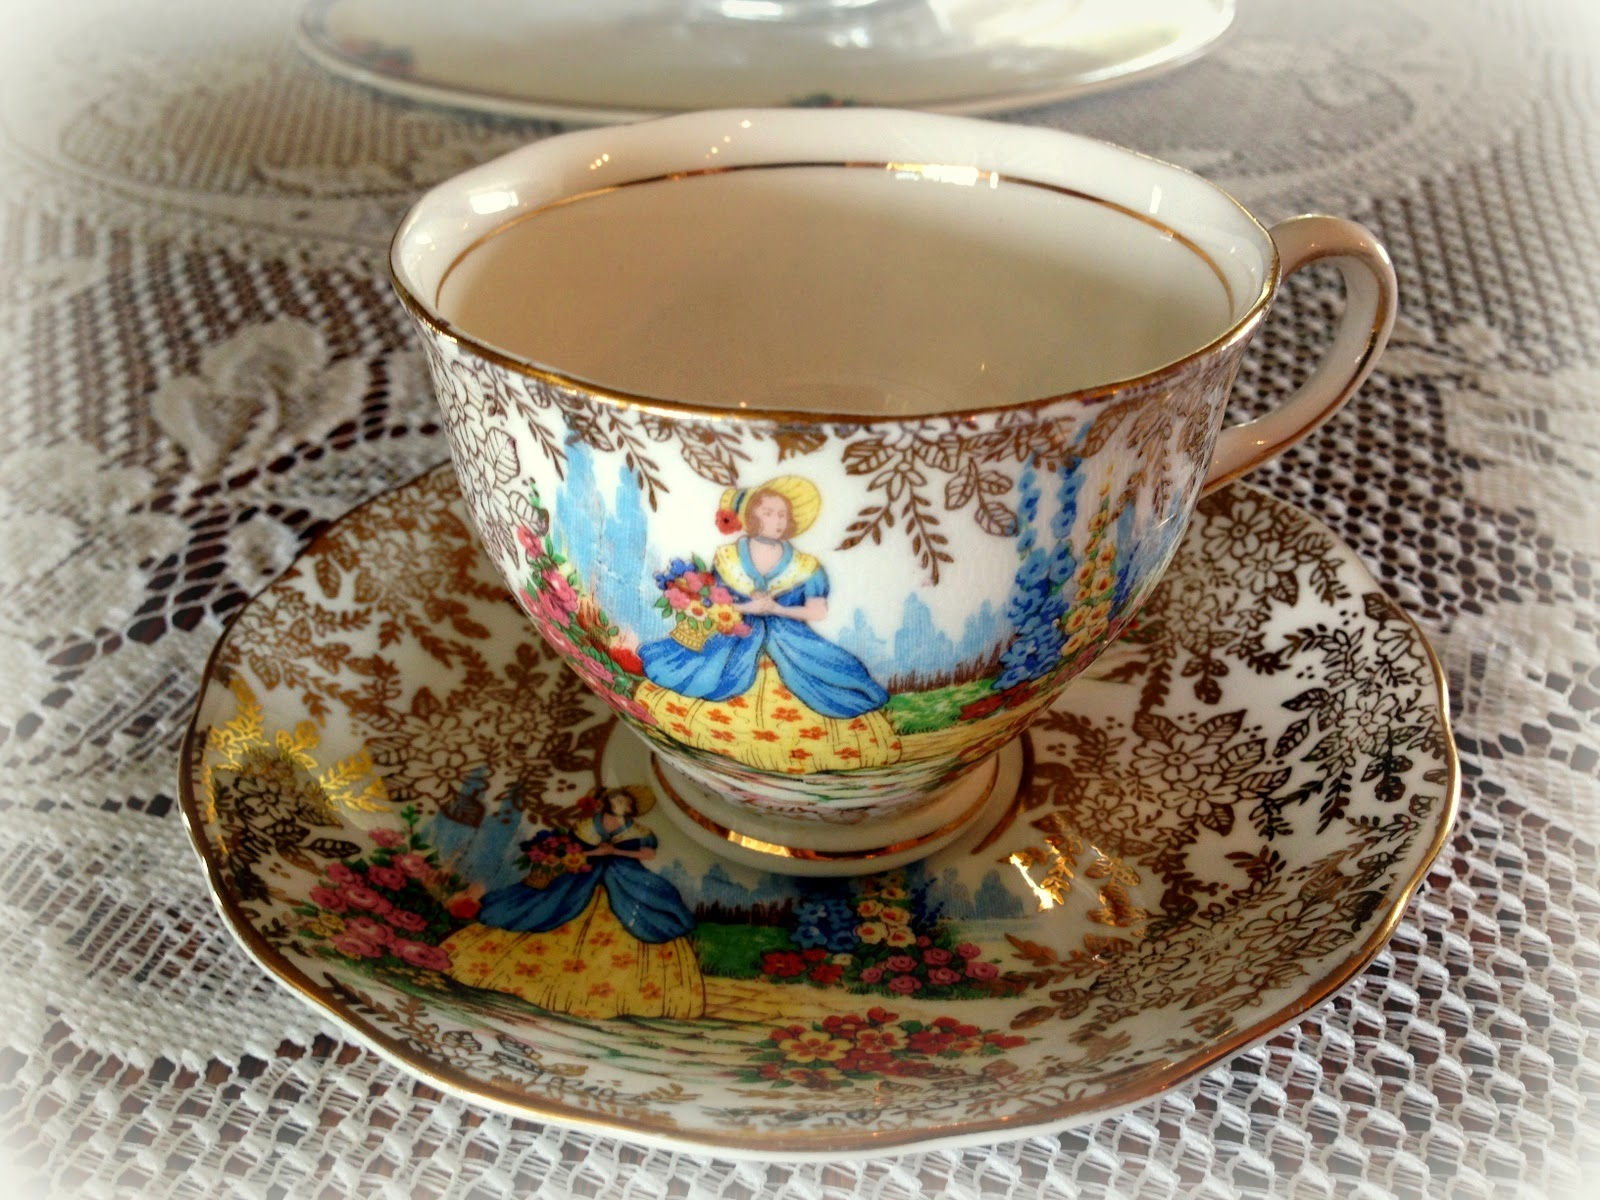 Crinoline Lady Teacup